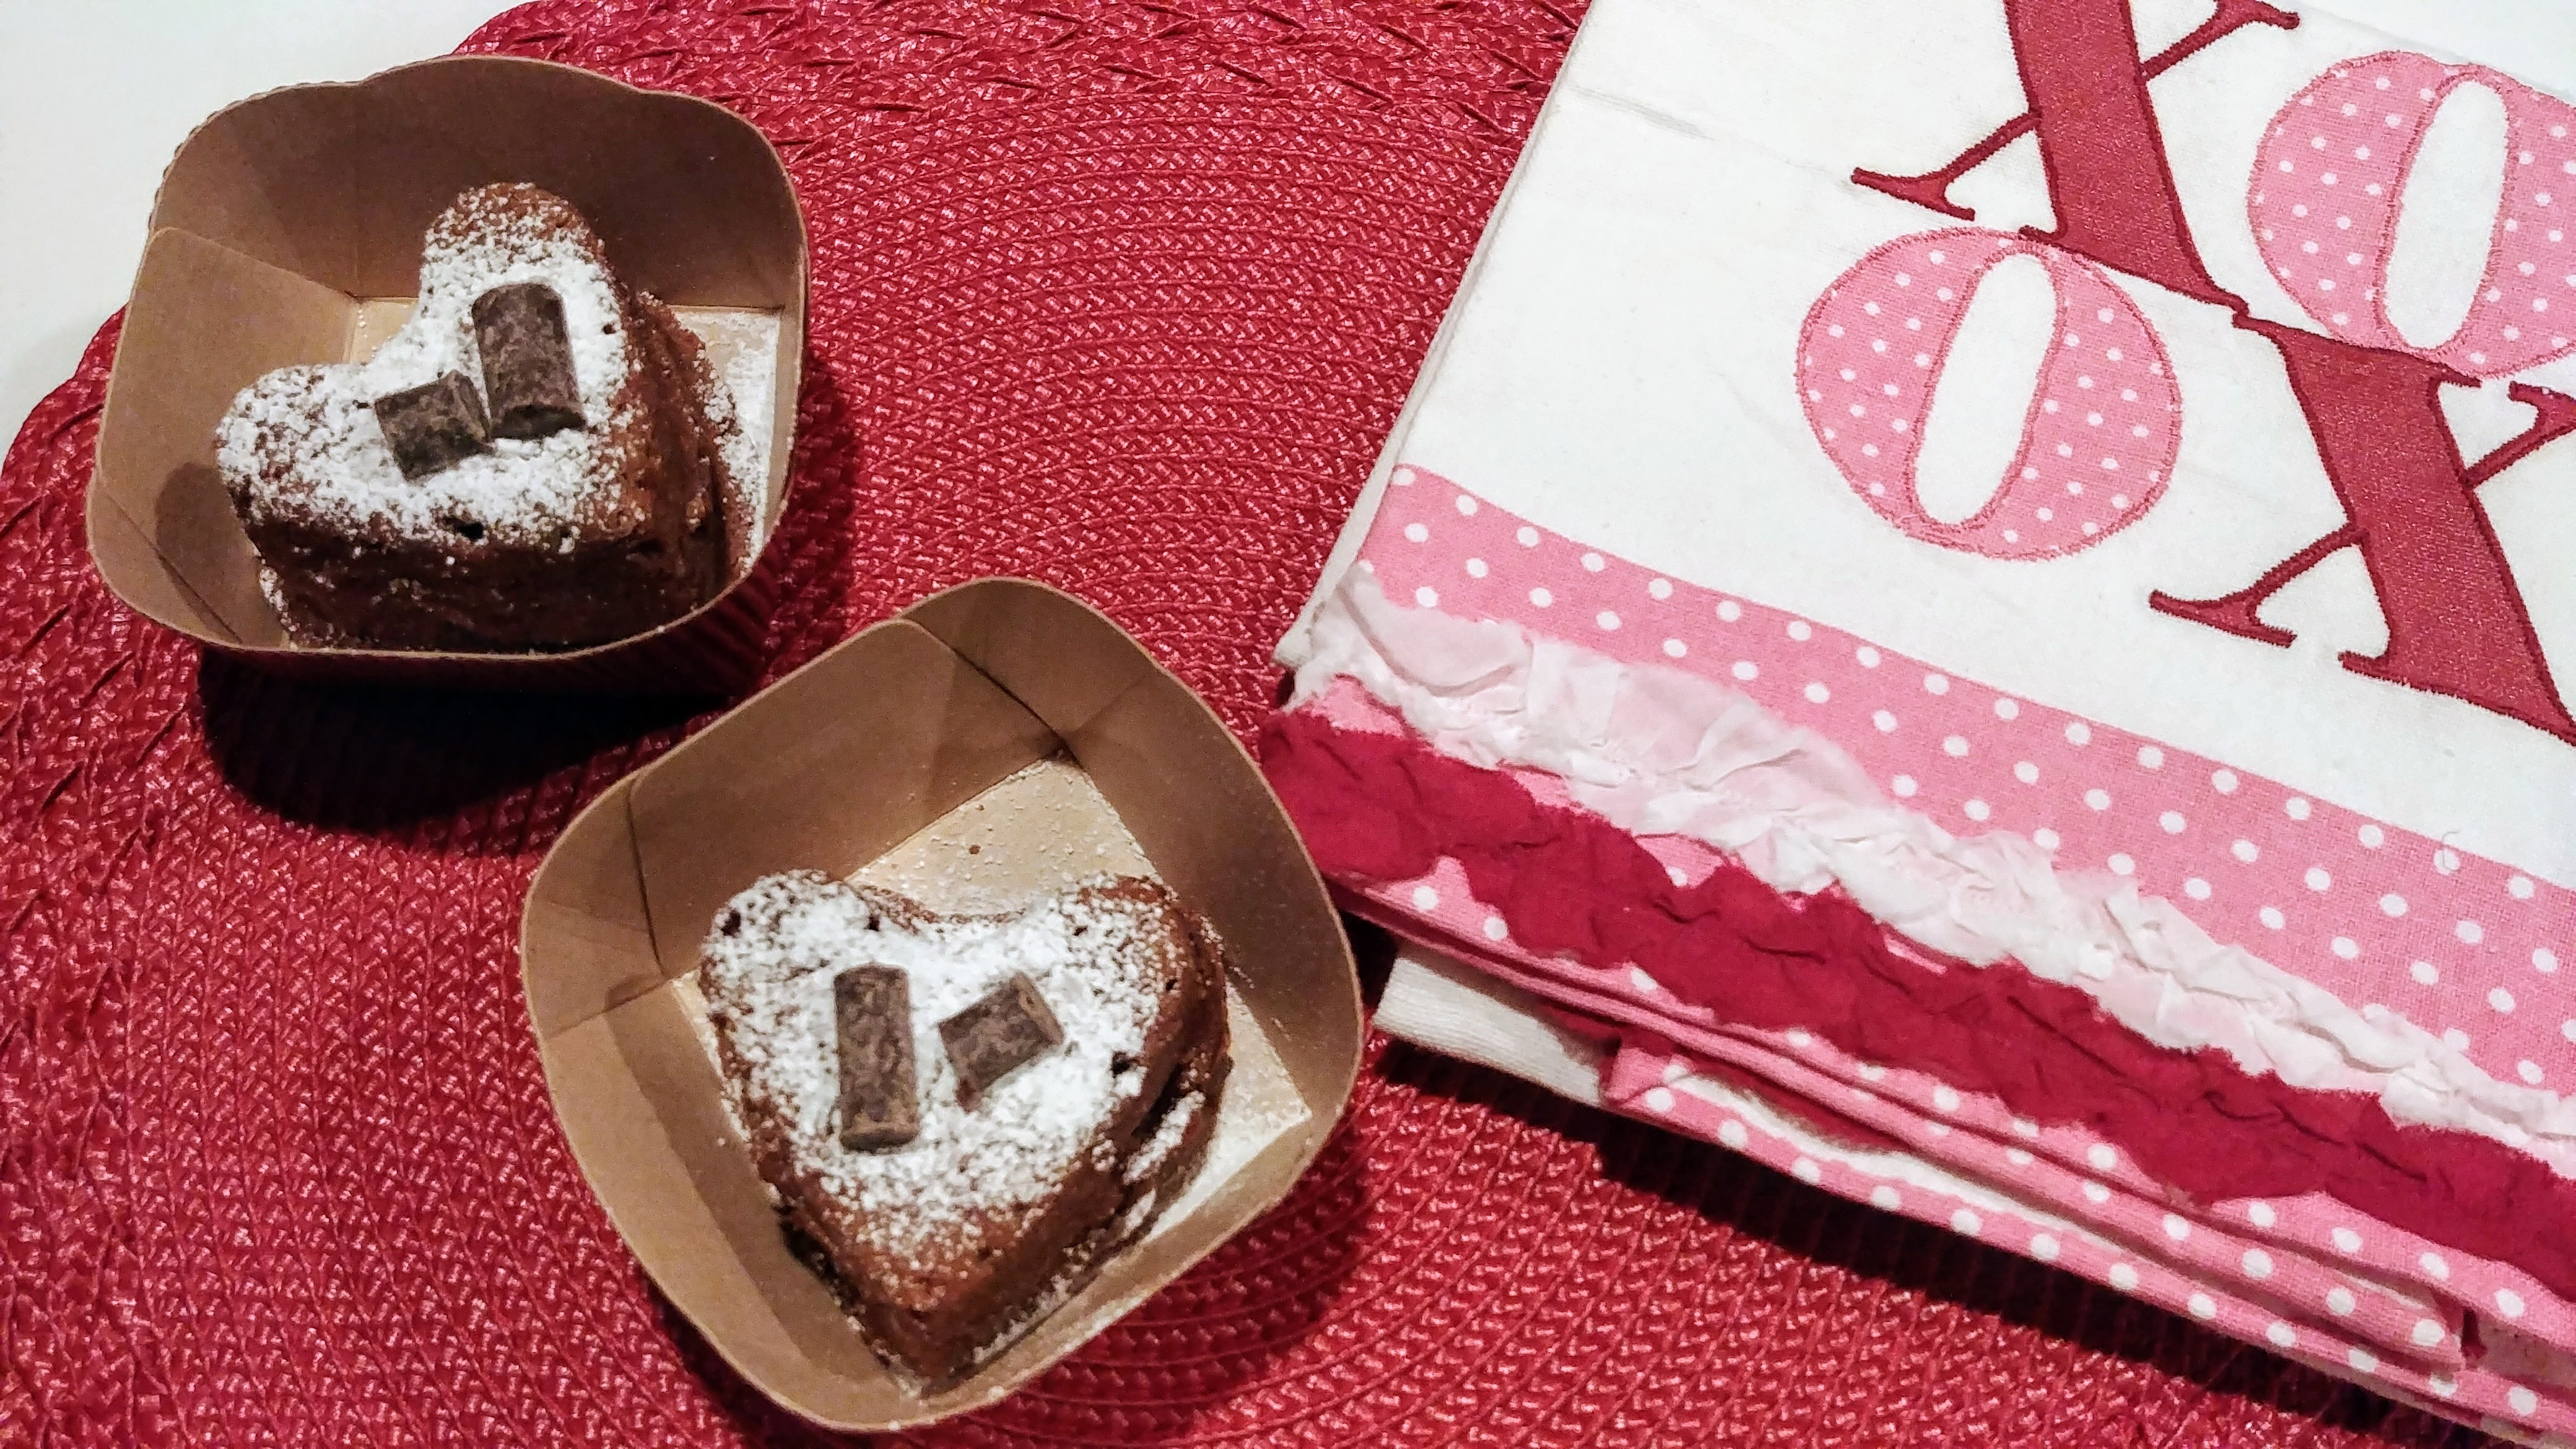 Cakelets in to go container with XOXO dish towel